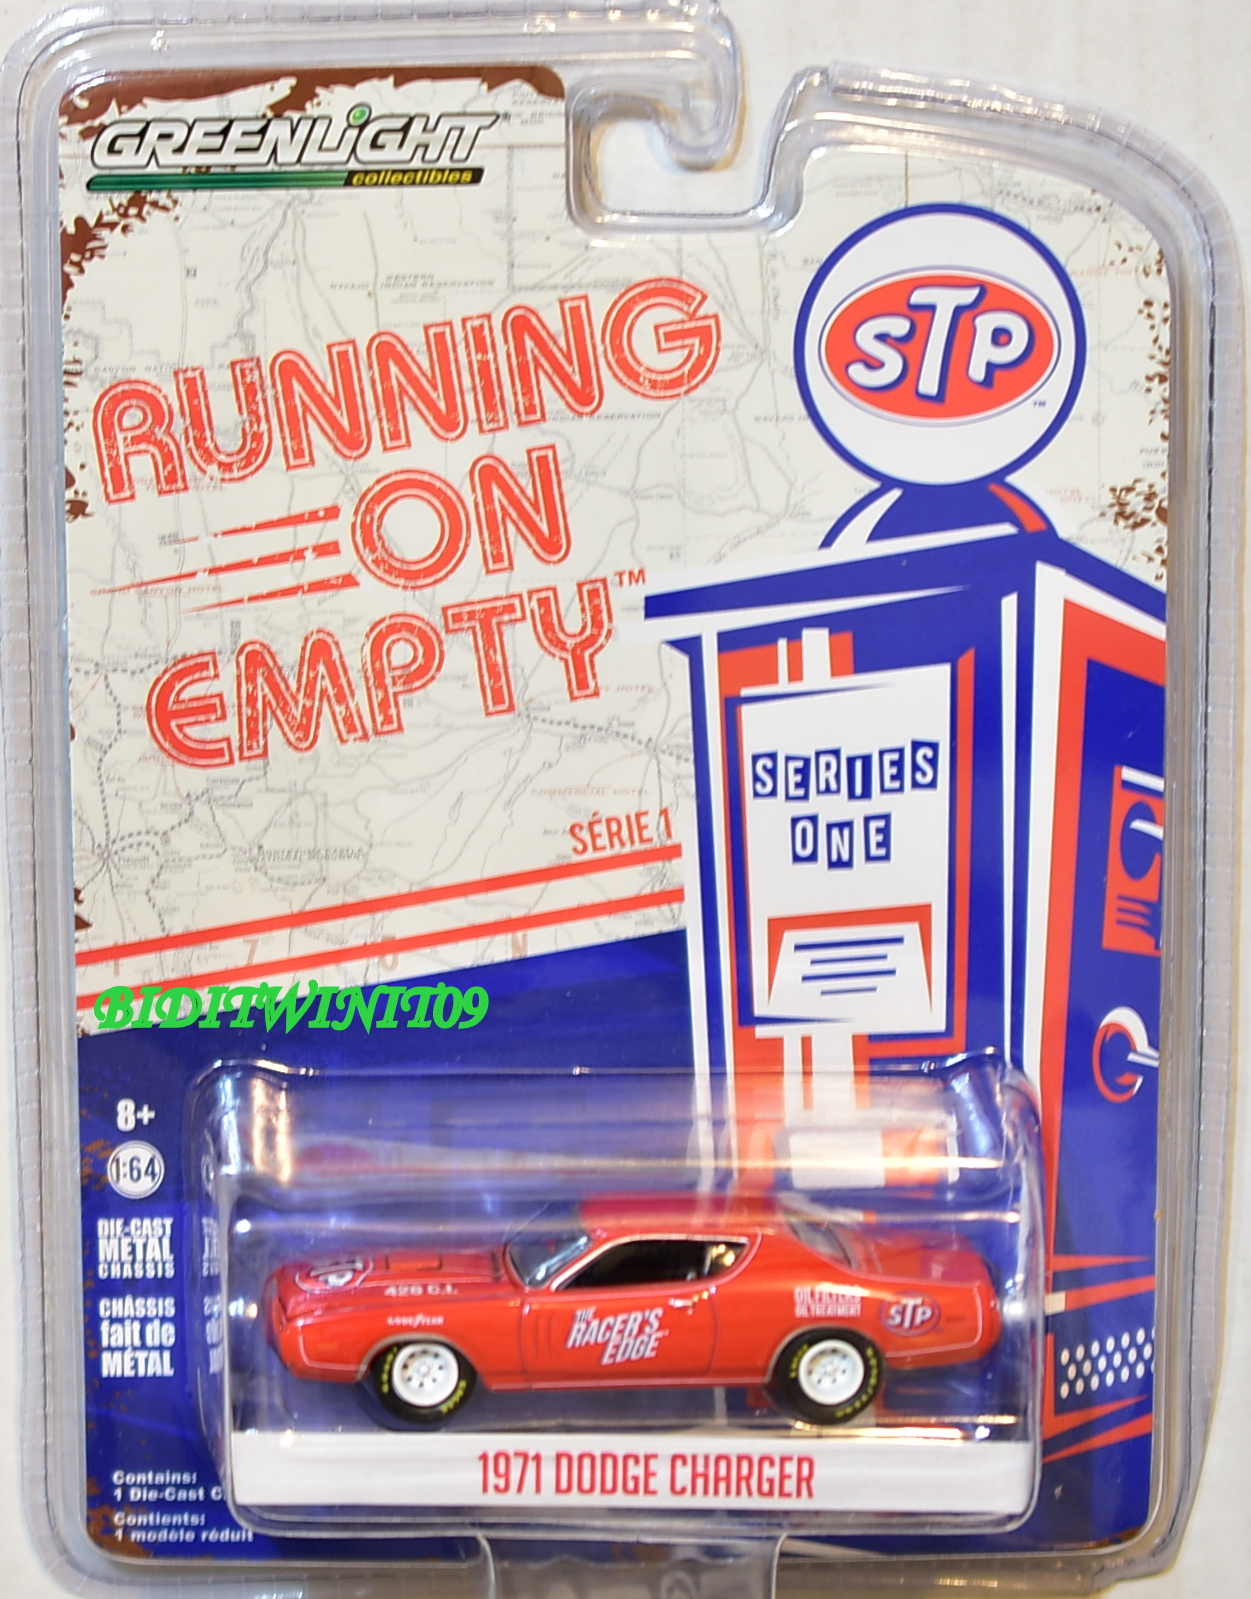 GREENLIGHT RUNNING ON EMPTY SERIES 1 1971 DODGE CHARGER RED STP